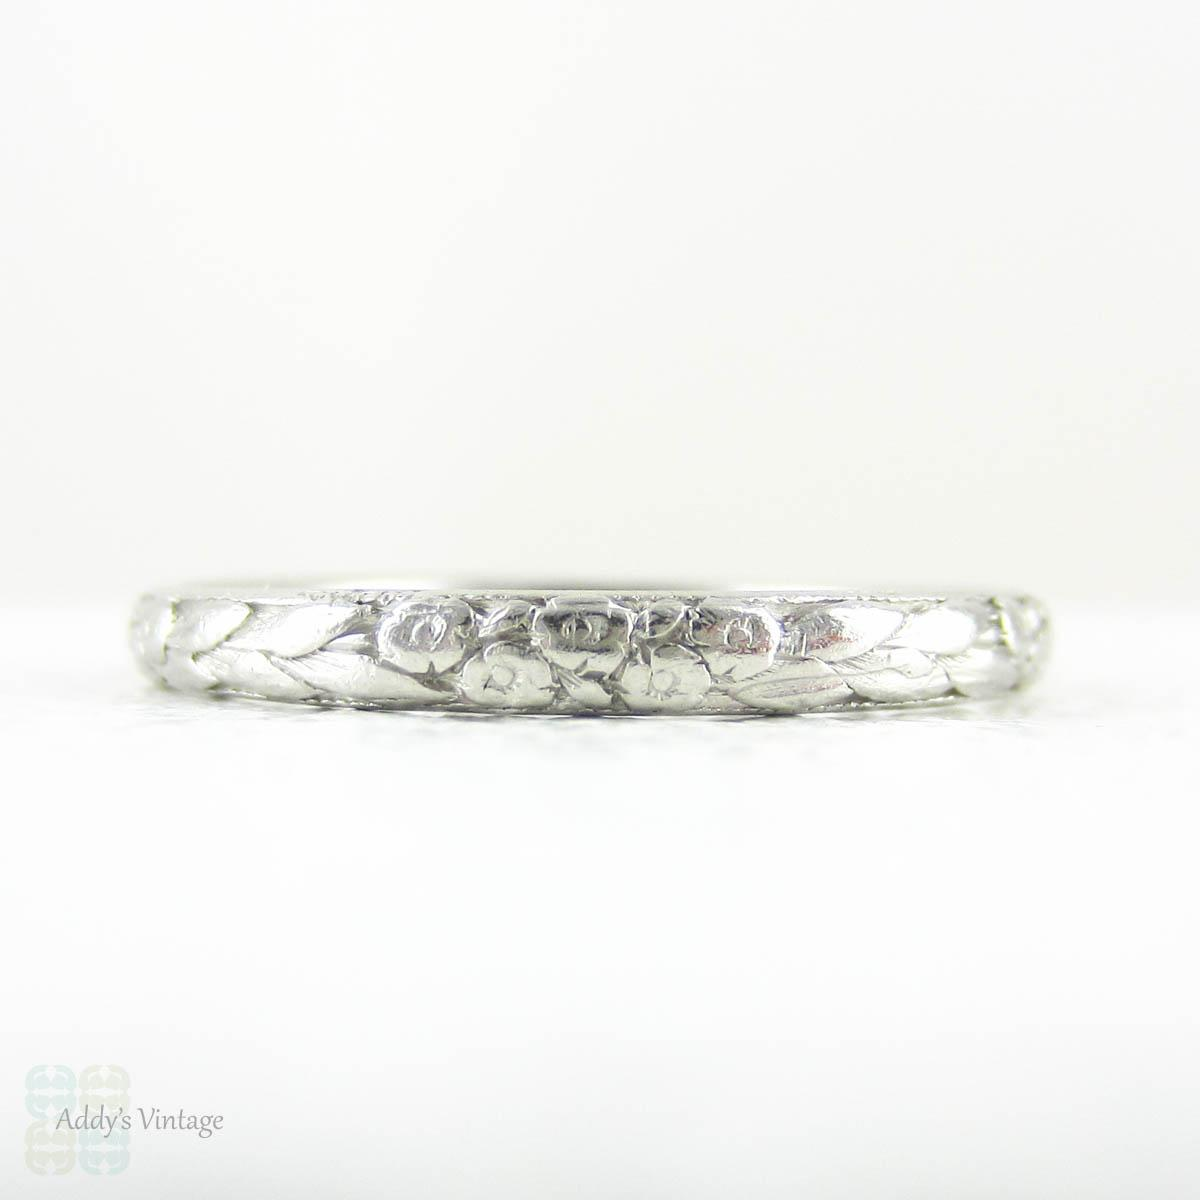 vintage engraved platinum wedding ring, art deco floral pattern